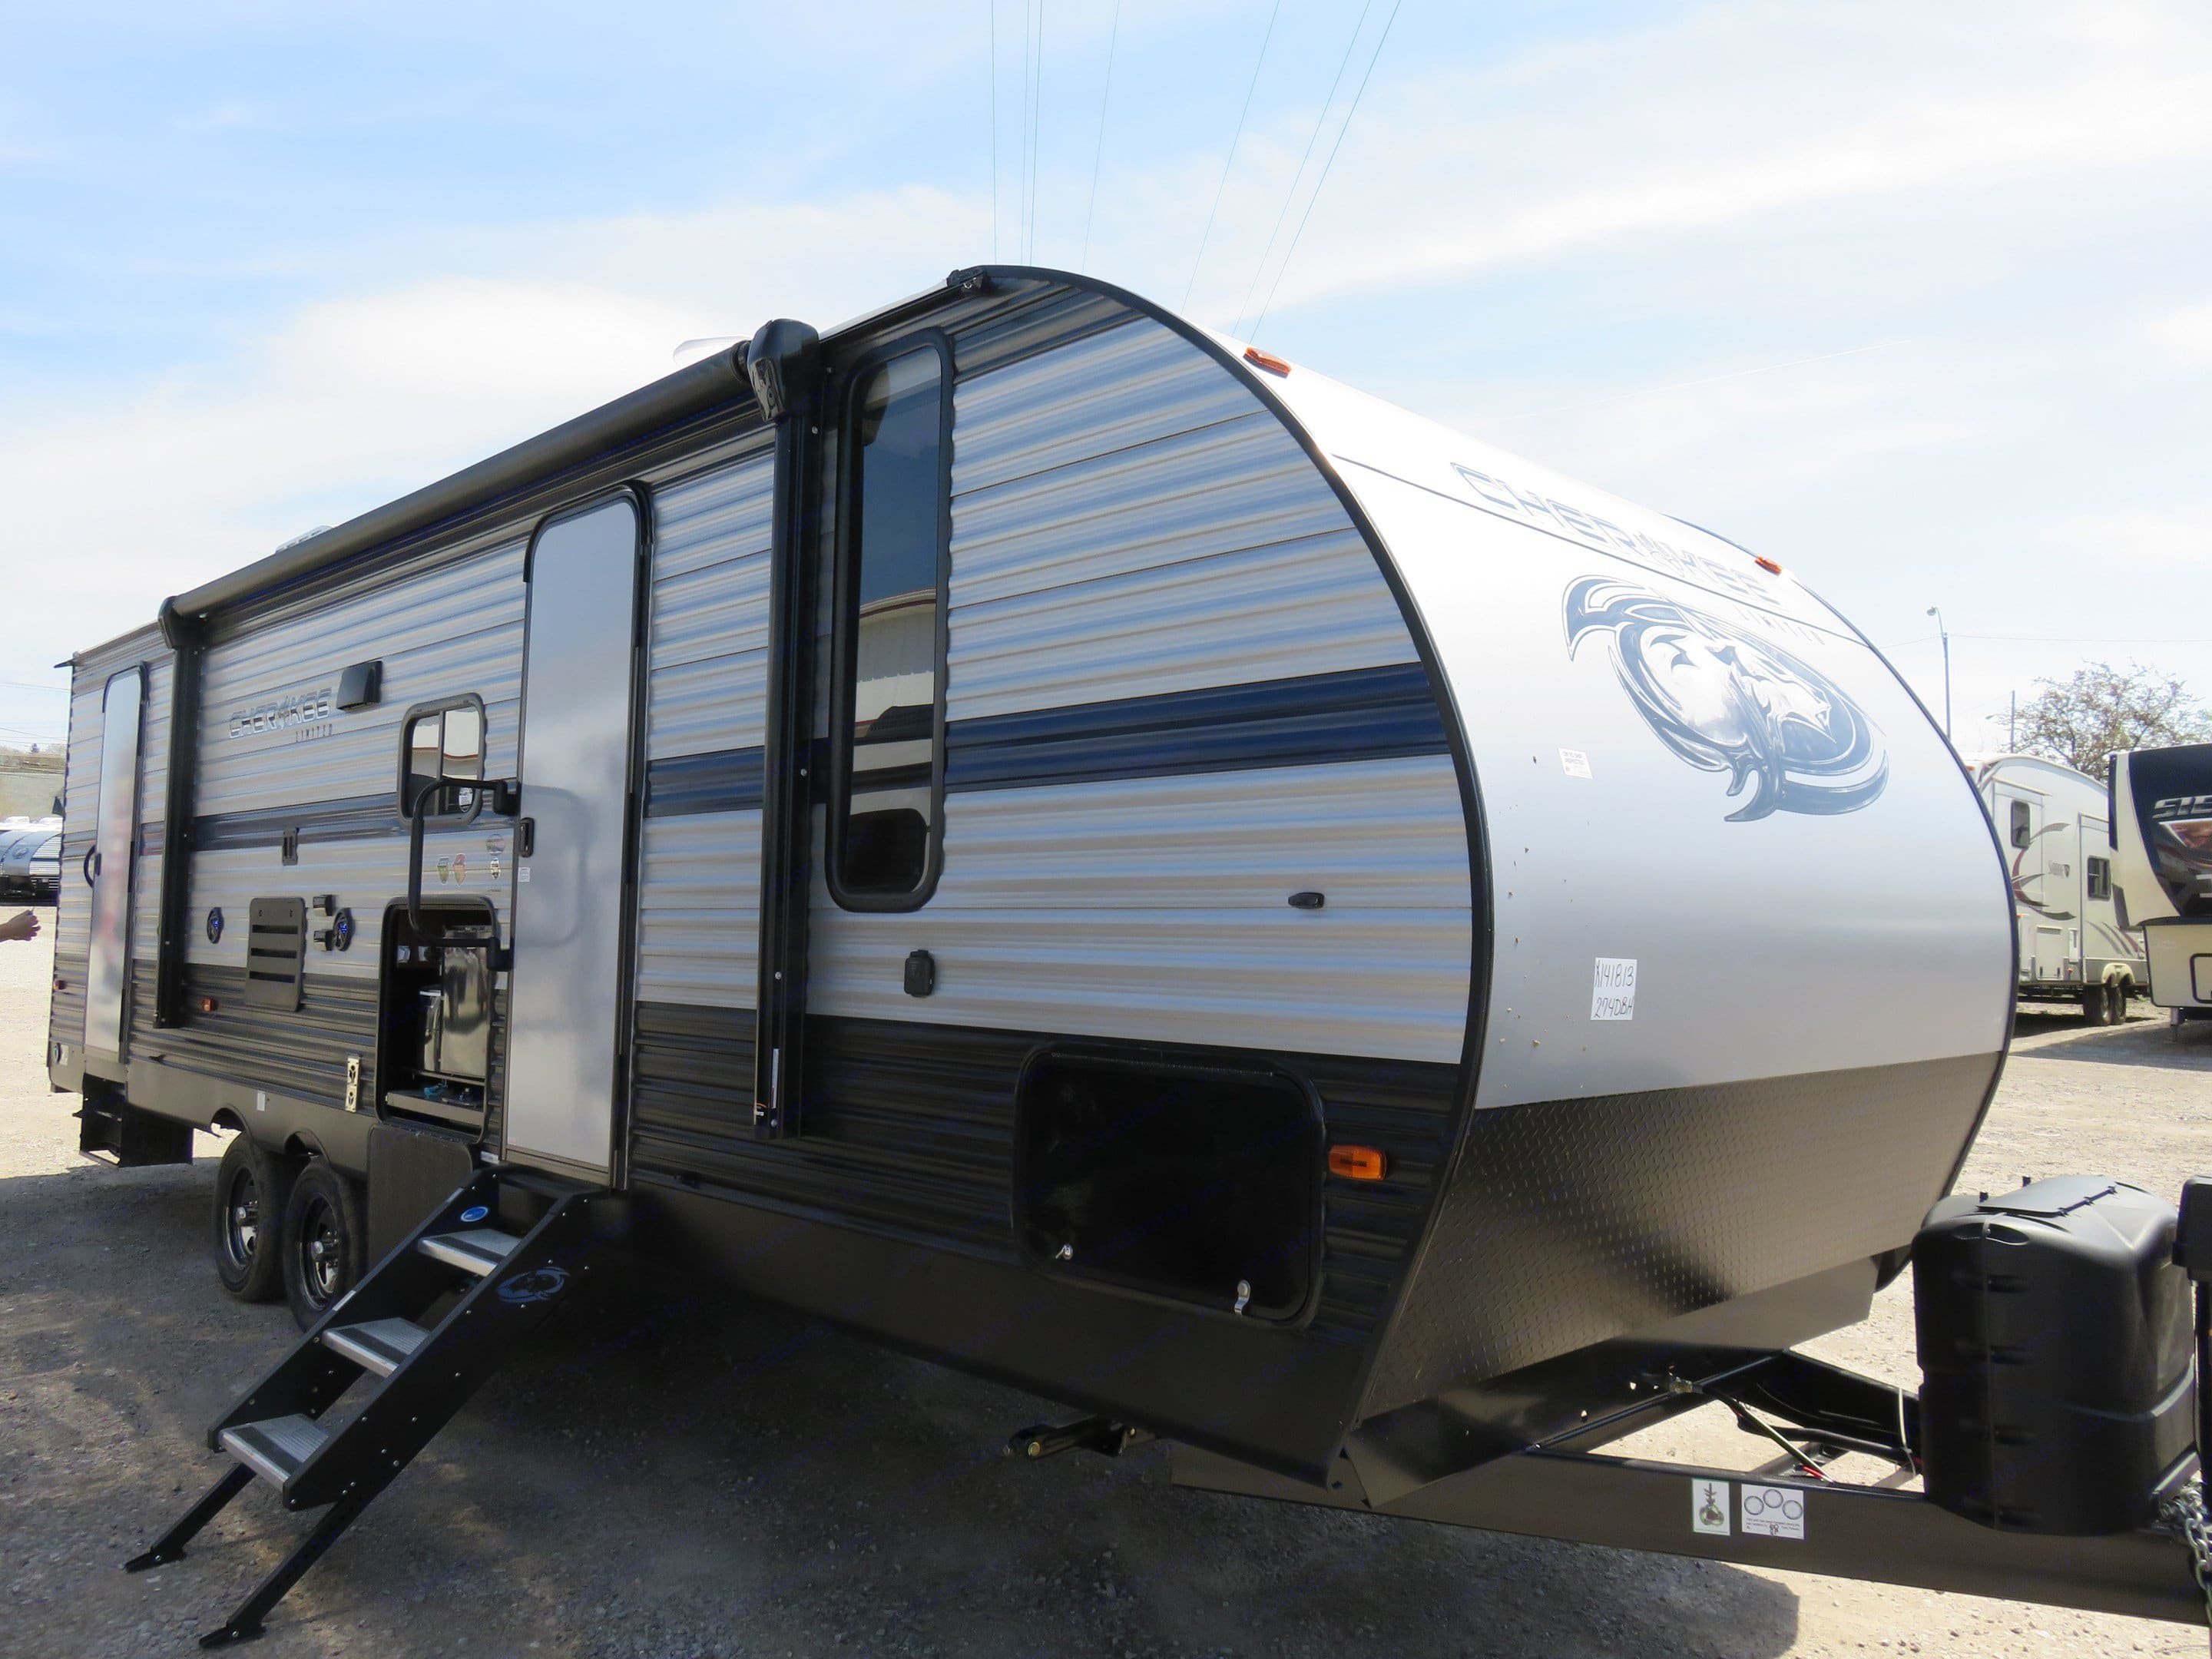 Hug awning and outdoor speakers. Forest River Cherokee Grey Wolf 2019